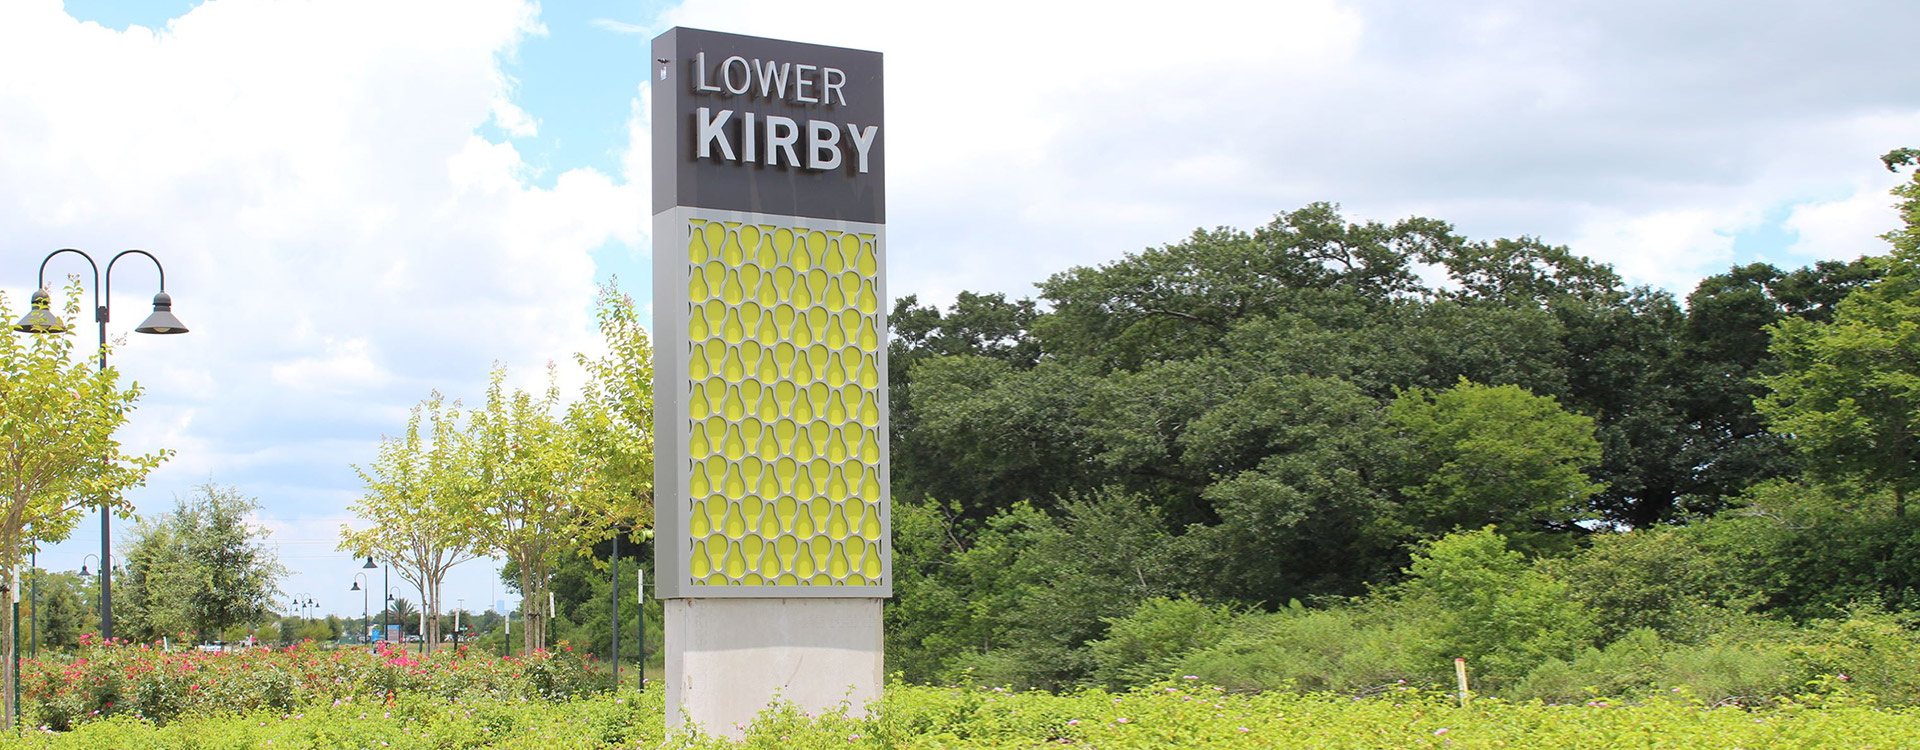 Lower Kirby Sign